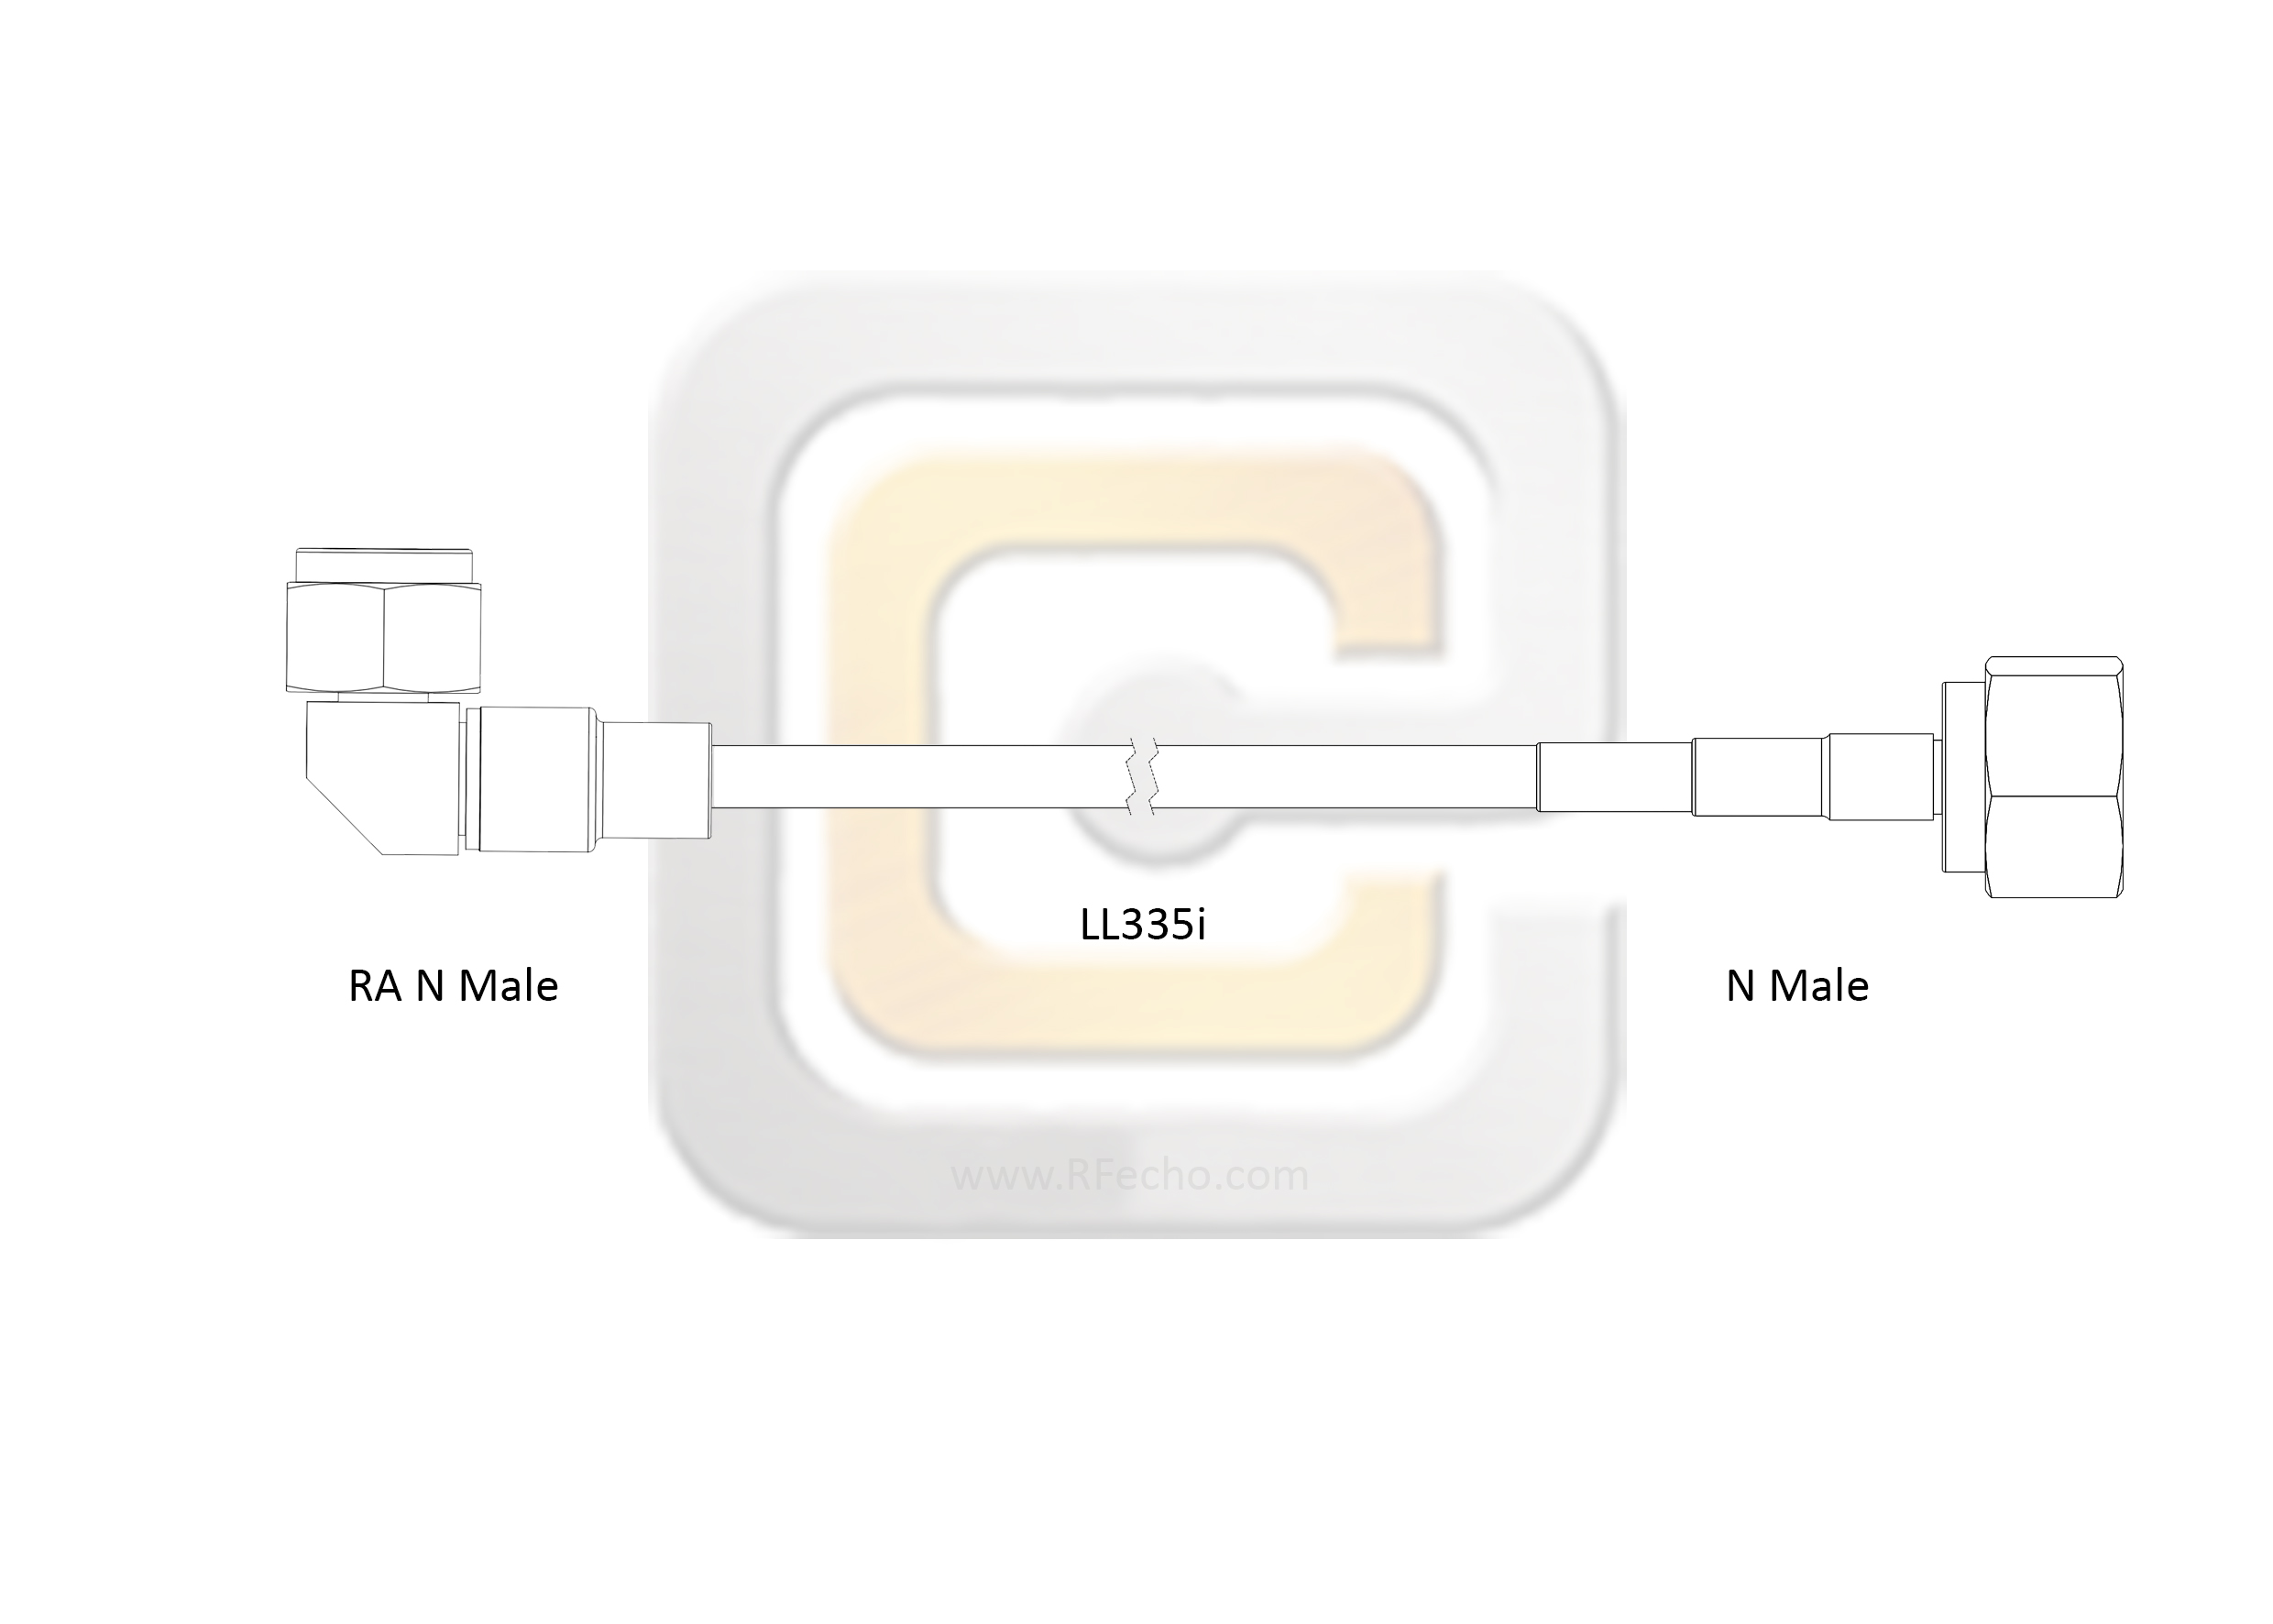 F040 291S0 291R0 180 N outline Low Loss N Male to Right Angle N Male, 18 GHz,  LL335i Coax and RoHS